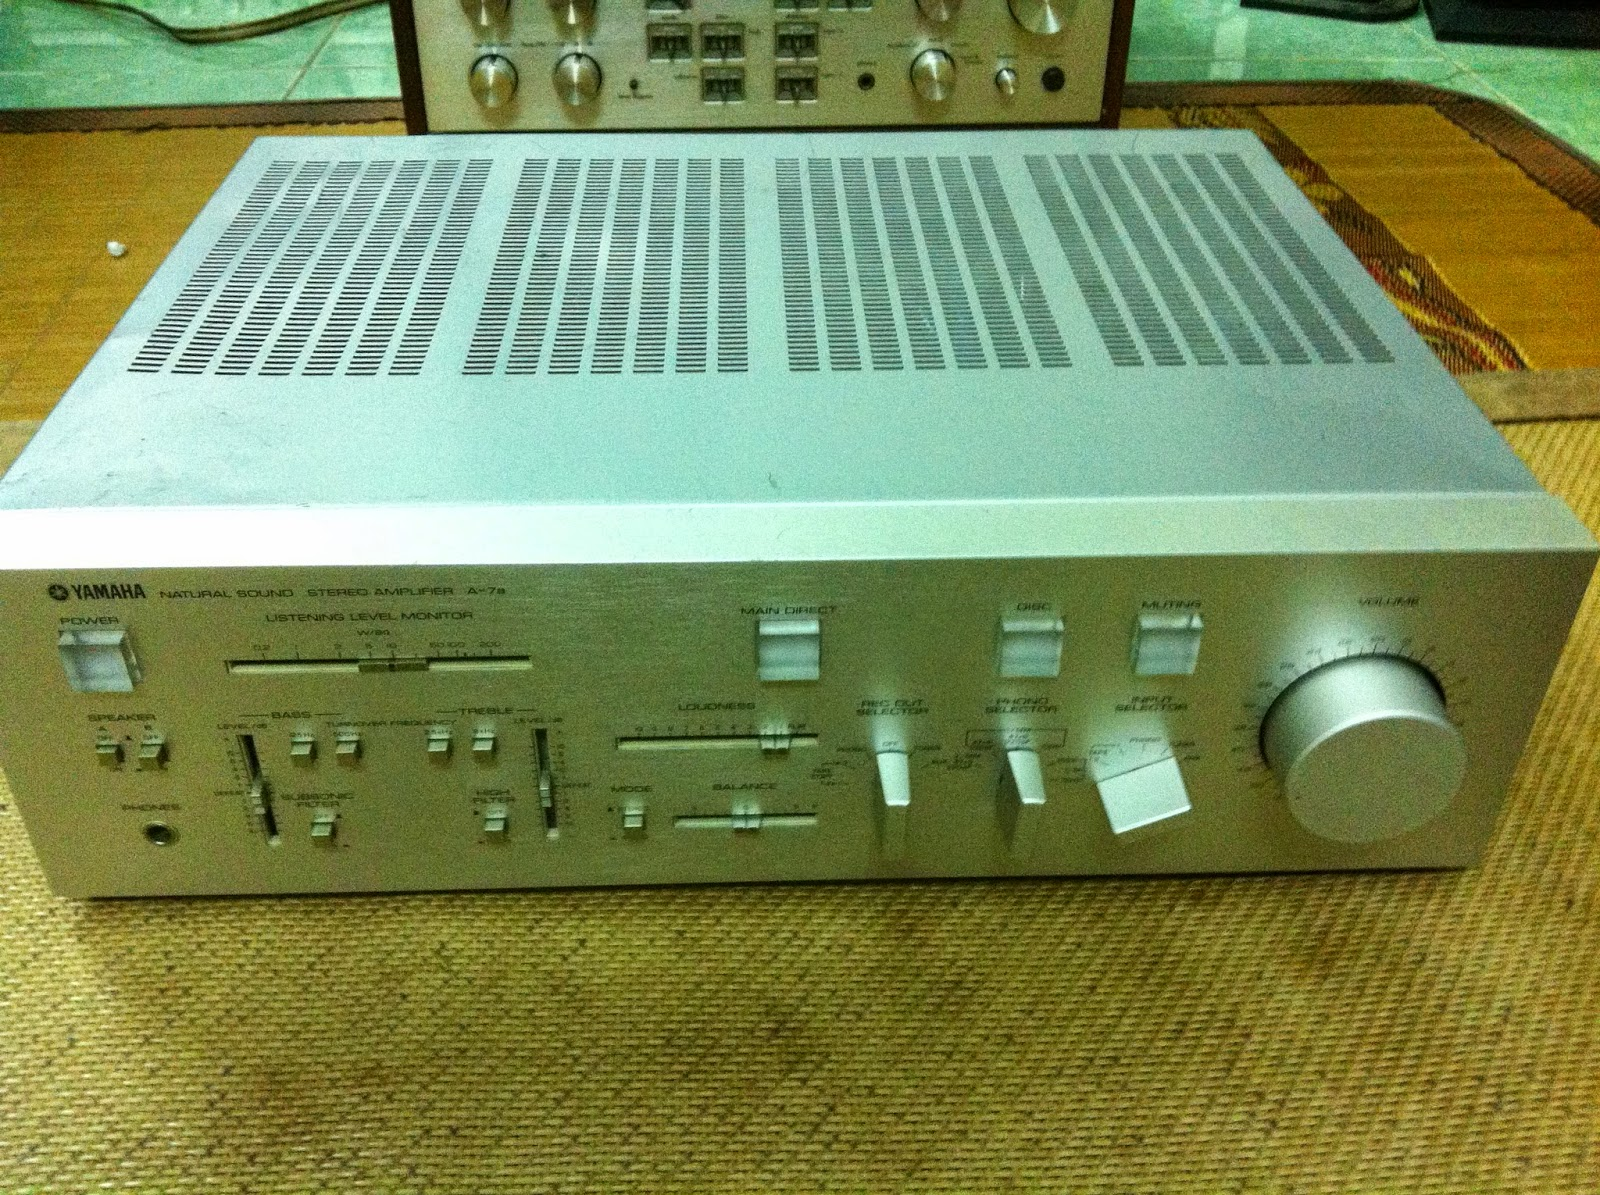 Amply Yamaha A-7a - Made in Japan